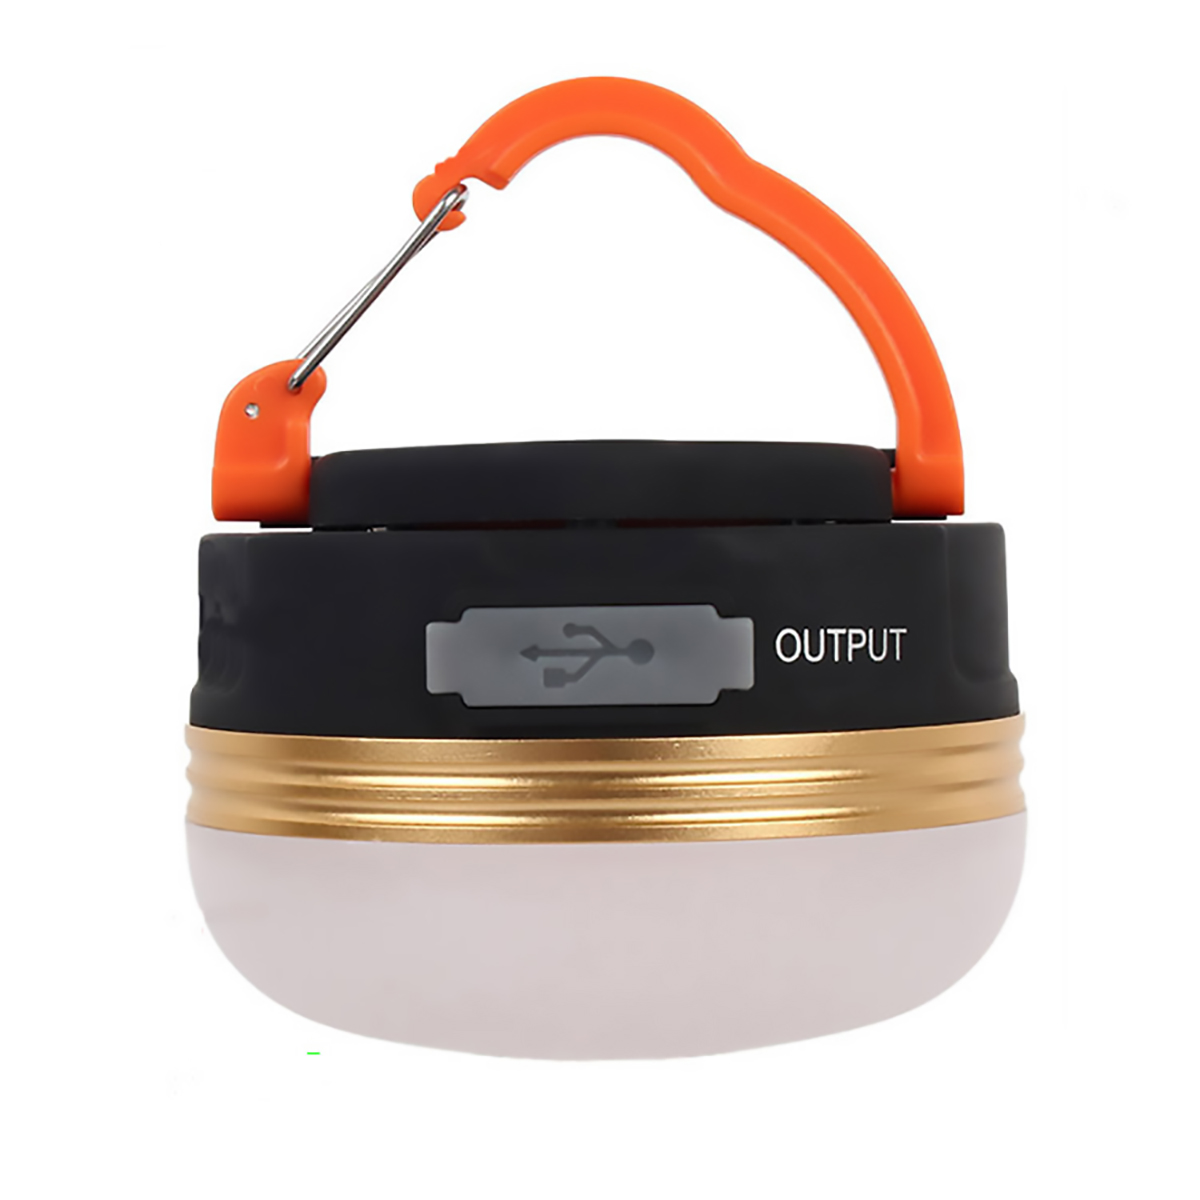 Super Bright Waterproof Portable Camping Lantern MIni Night Light 3w Modes Portable LED Camping Light Outdoor Emergency Lamp